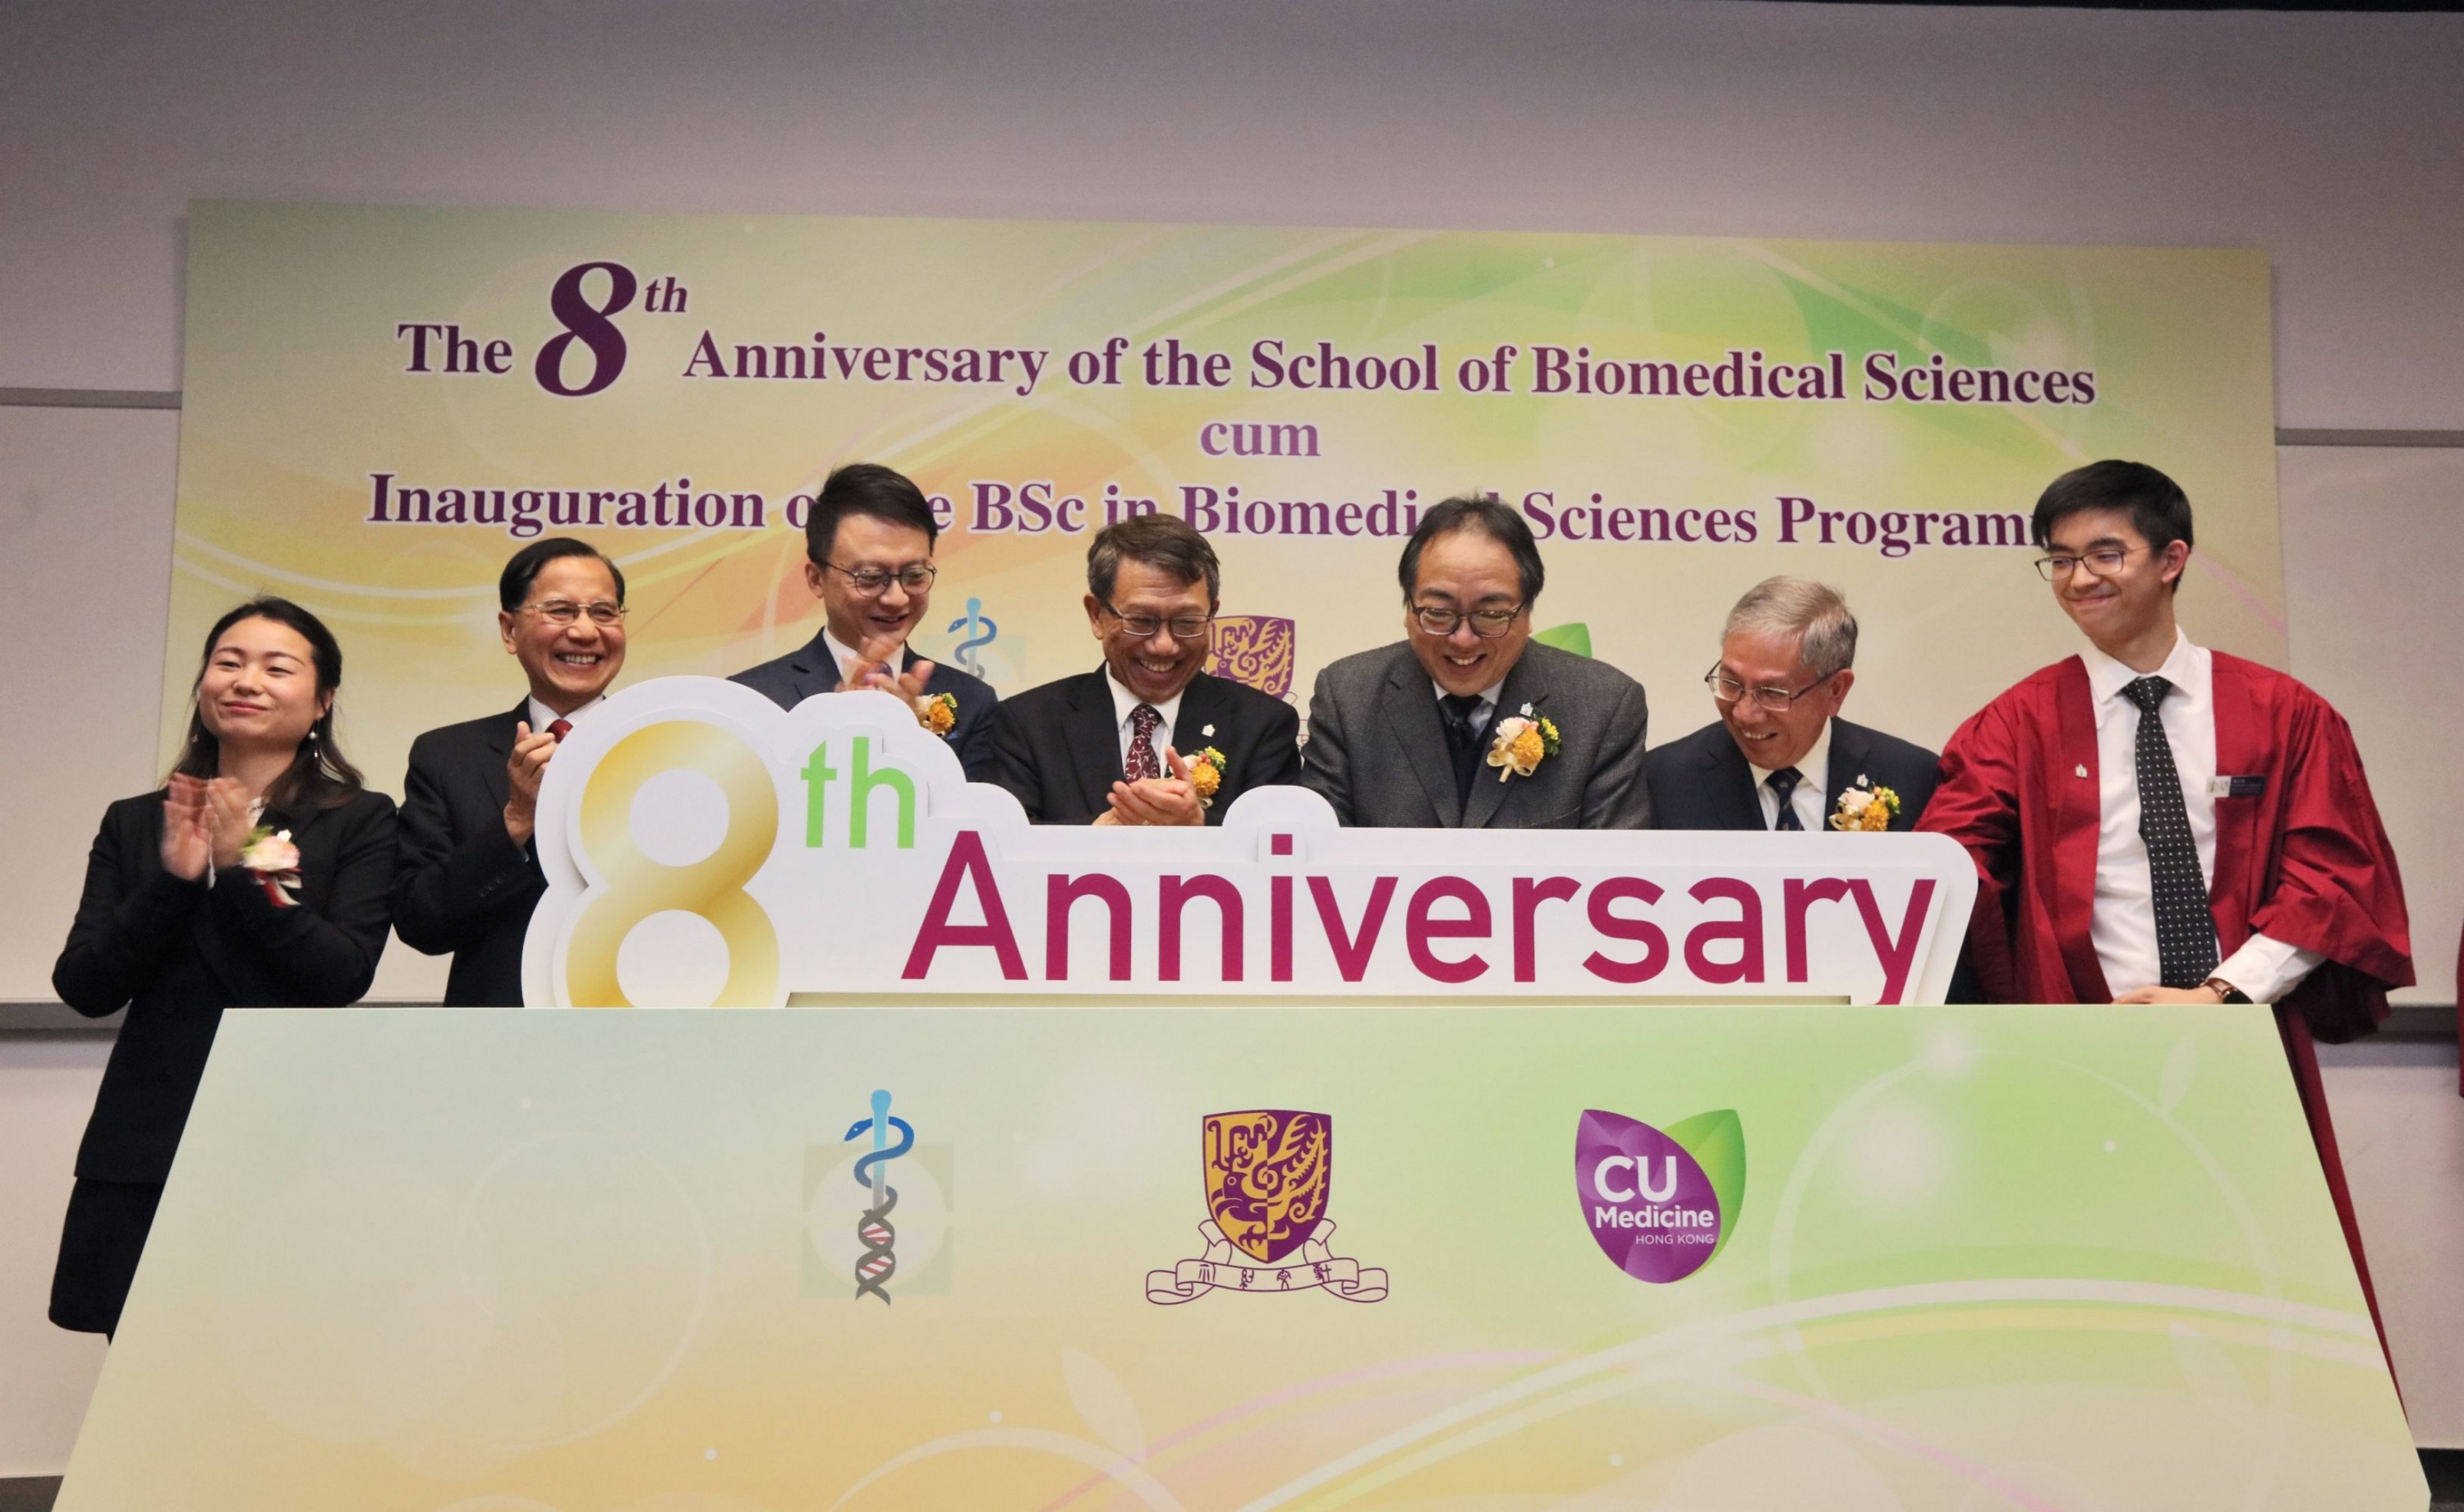 The School of Biomedical Sciences at CUHK celebrates its 8th anniversary. Officiating guests include Prof. Lap-Chee TSUI, Founding President of The Academy of Sciences of Hong Kong (3rd right); Prof. Rocky S. TUAN, Vice-Chancellor and President of CUHK (middle); Prof. Francis CHAN, Dean of the Faculty of Medicine at CUHK (3rd left); and Prof. Wai-Yee CHAN, Director of the School of Biomedical Sciences at CUHK (2nd right).